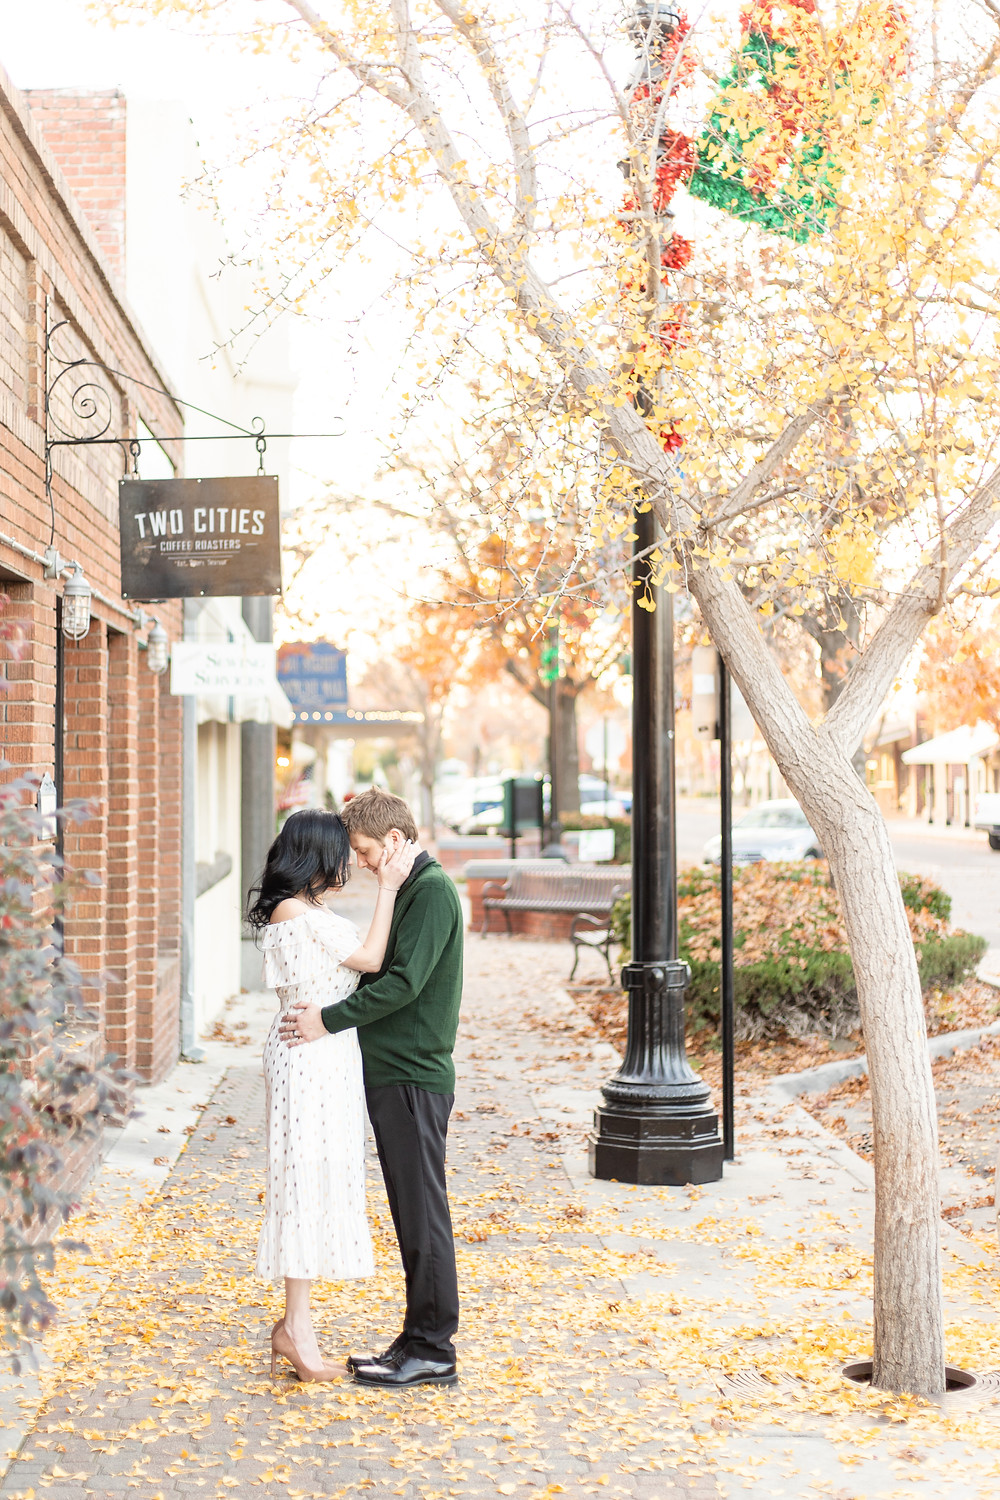 Portrait session by Central Valley couples photographer Ashley Norton.